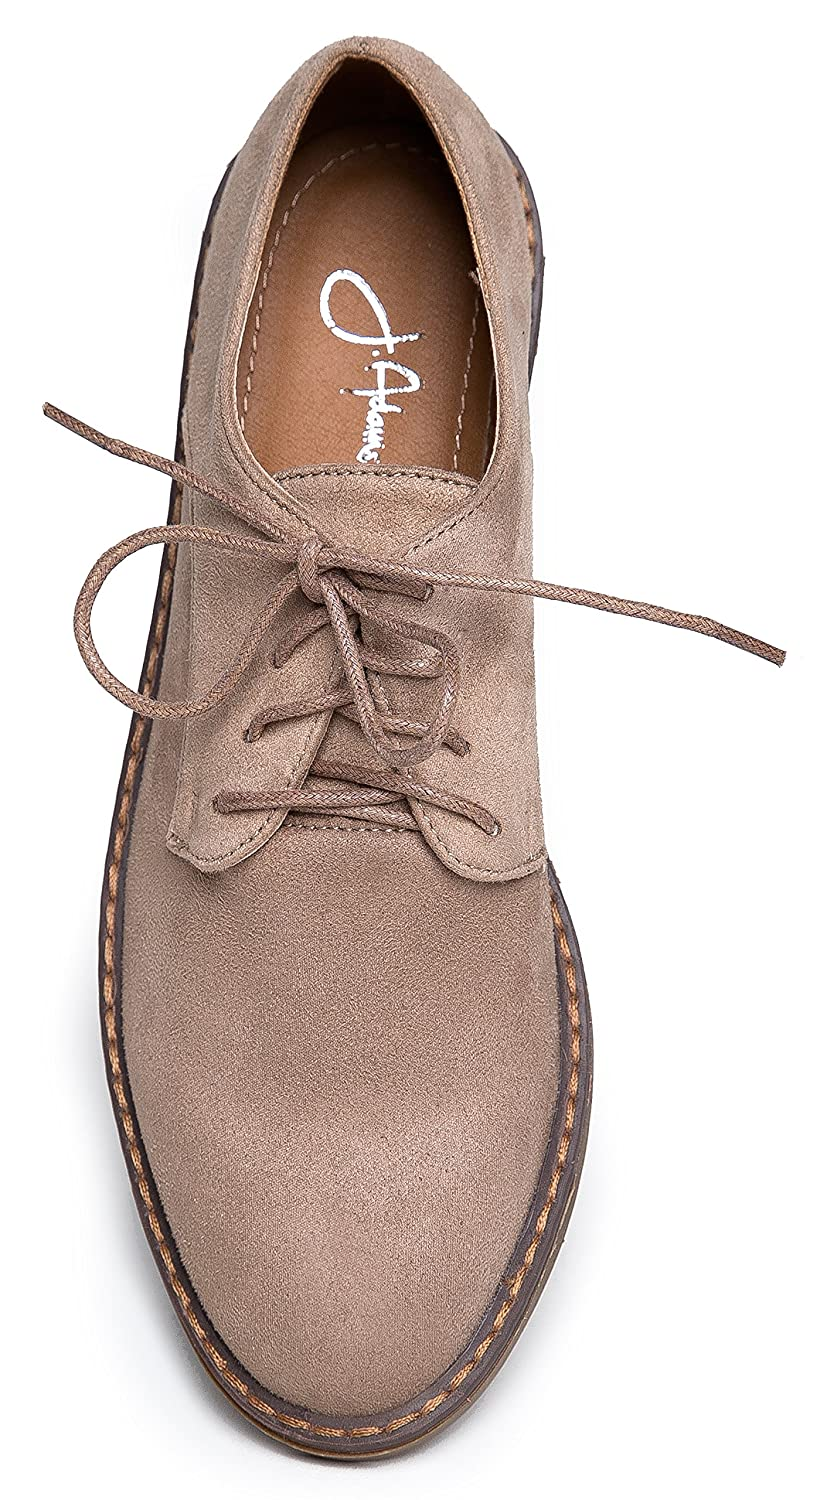 Casual Pointed Toe Chunky Heel Adams Classic Oxford Slip On Shoes J Maylor by Low Comfortable Lace up Sneakers